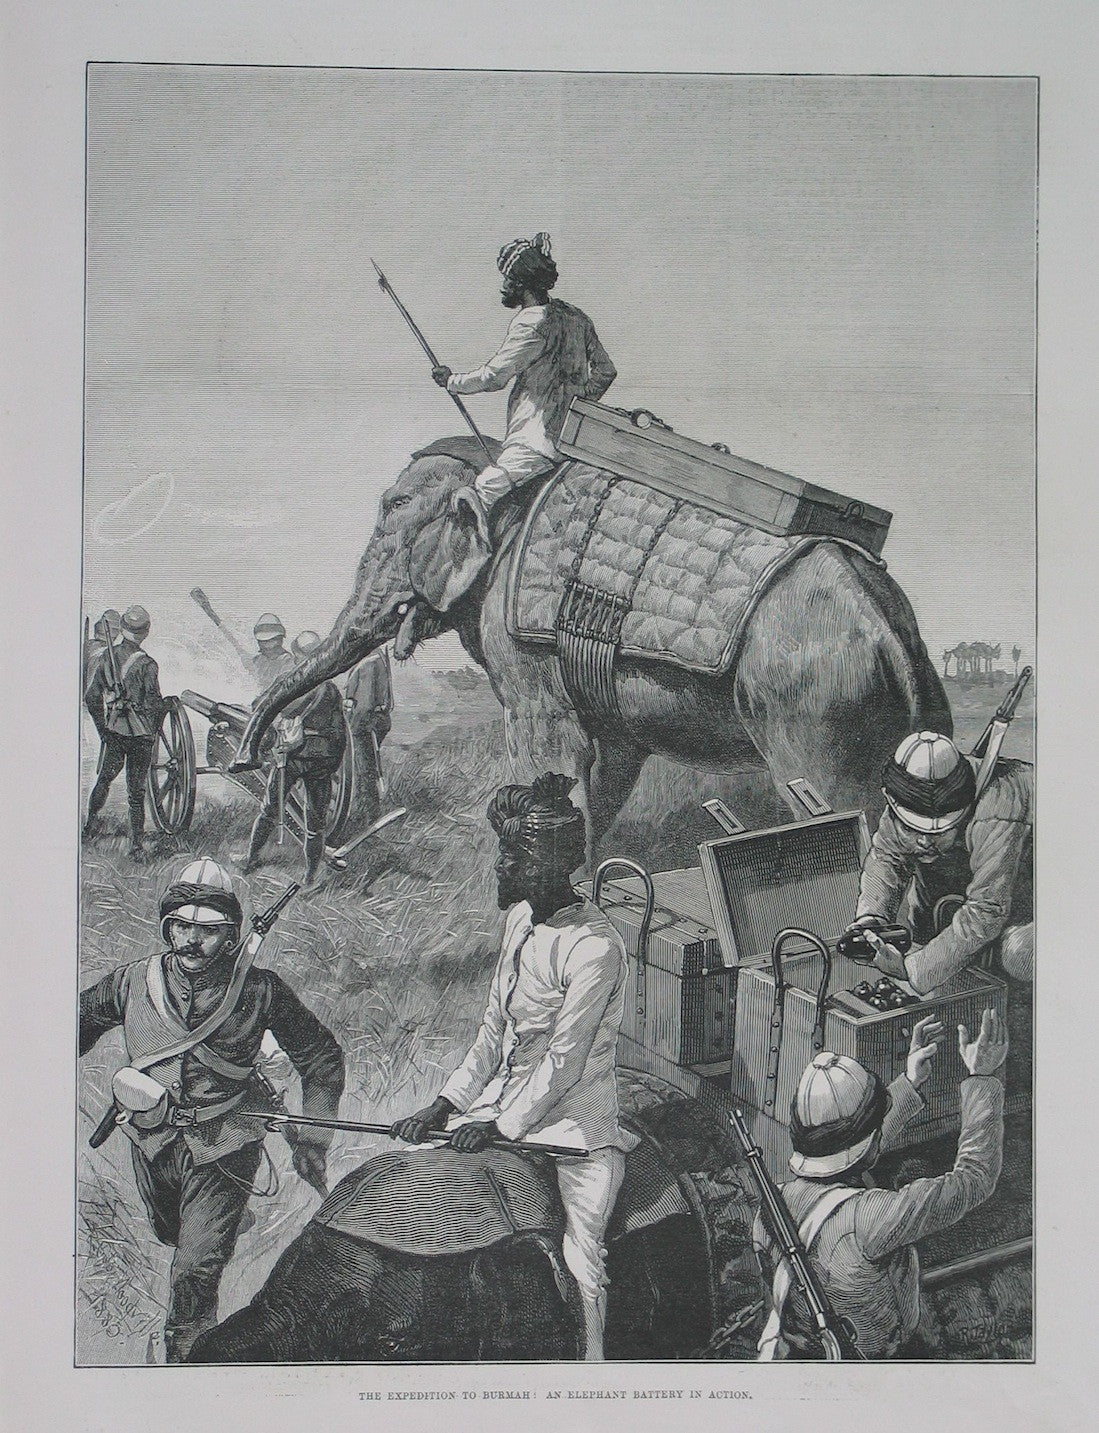 The Expedition to Burmah(sic) : An elephant battery in action.